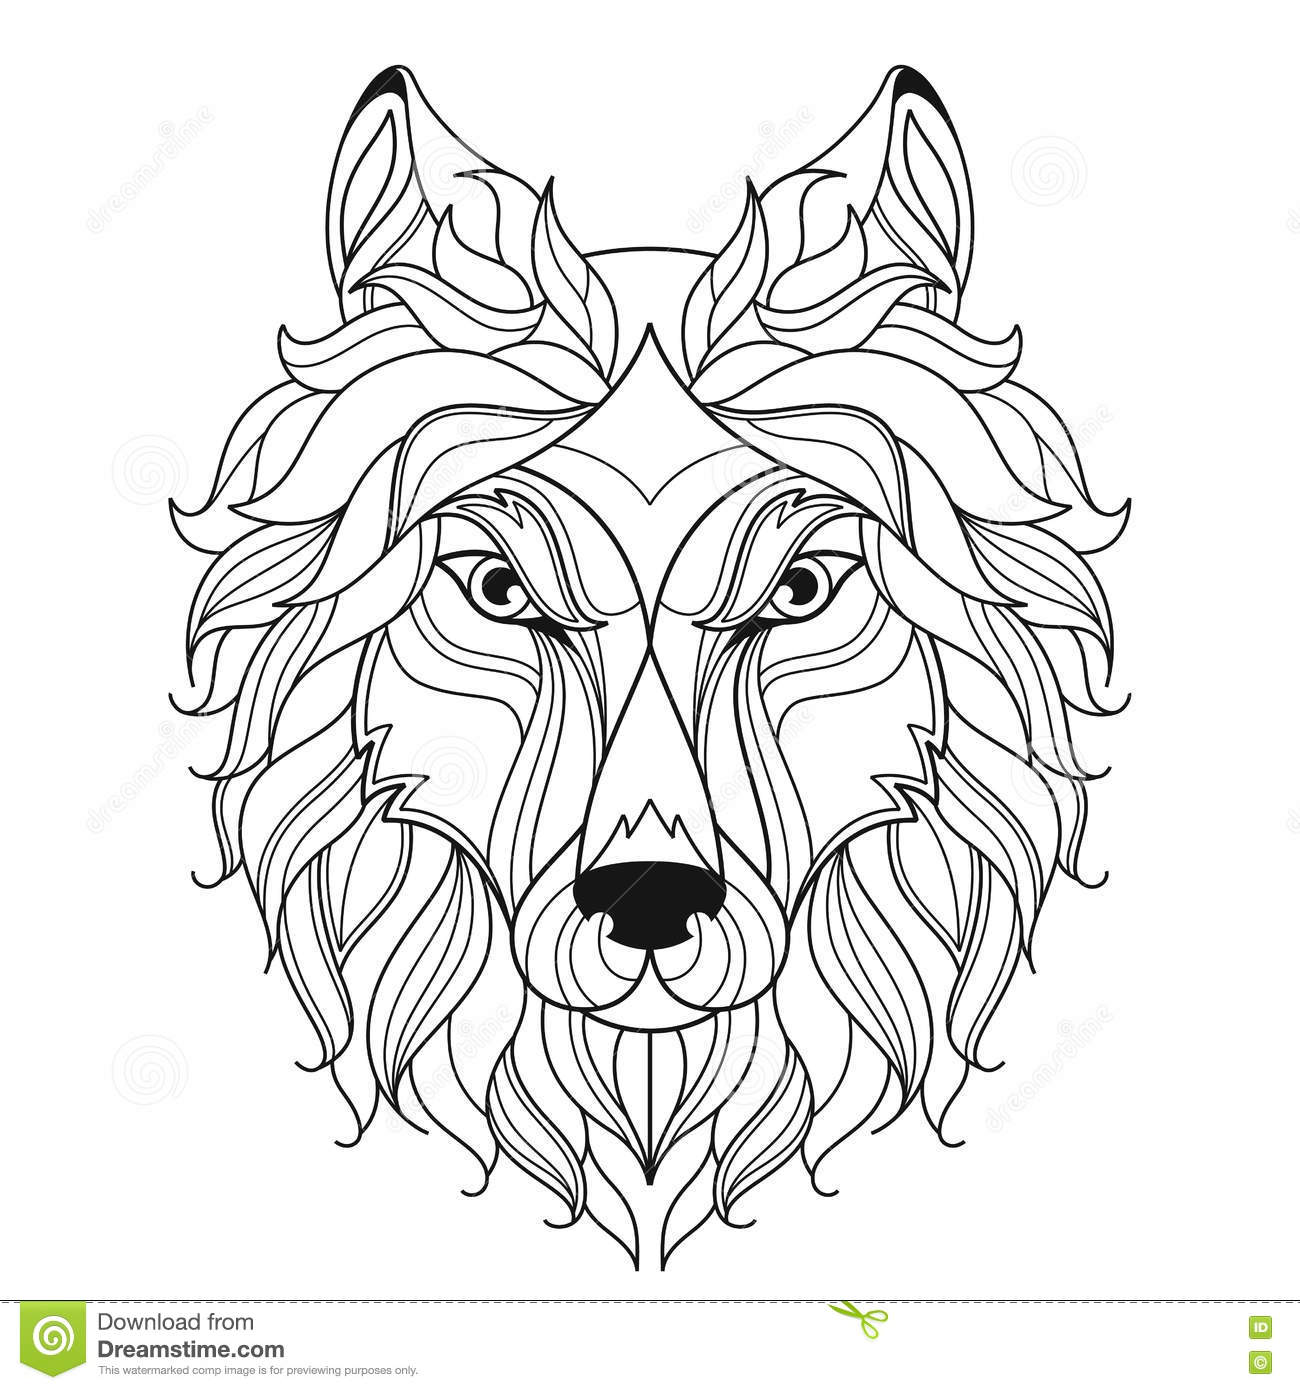 Coloring pages for adults wolf - Wolf Head Zentangle Stylized Coloring Page Royalty Free Stock Photos